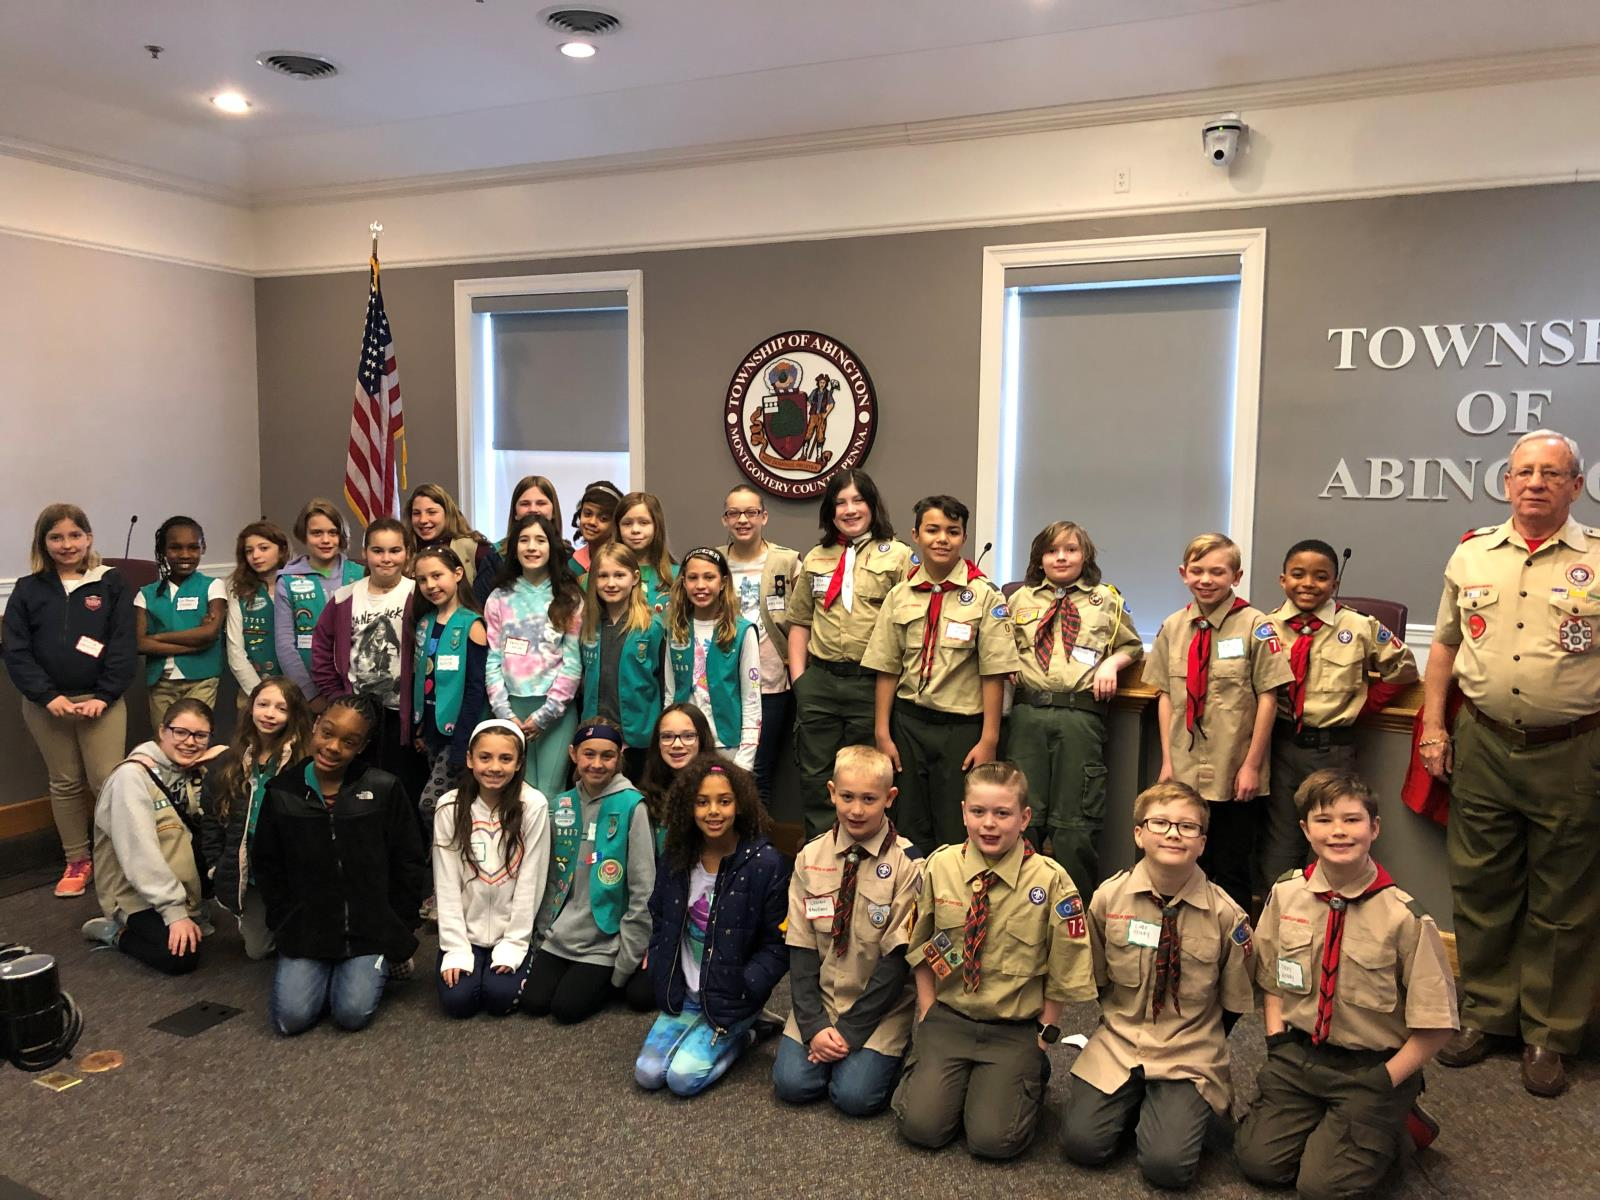 2019 Local Scout Day Group Picture of boys and girl scout participants.